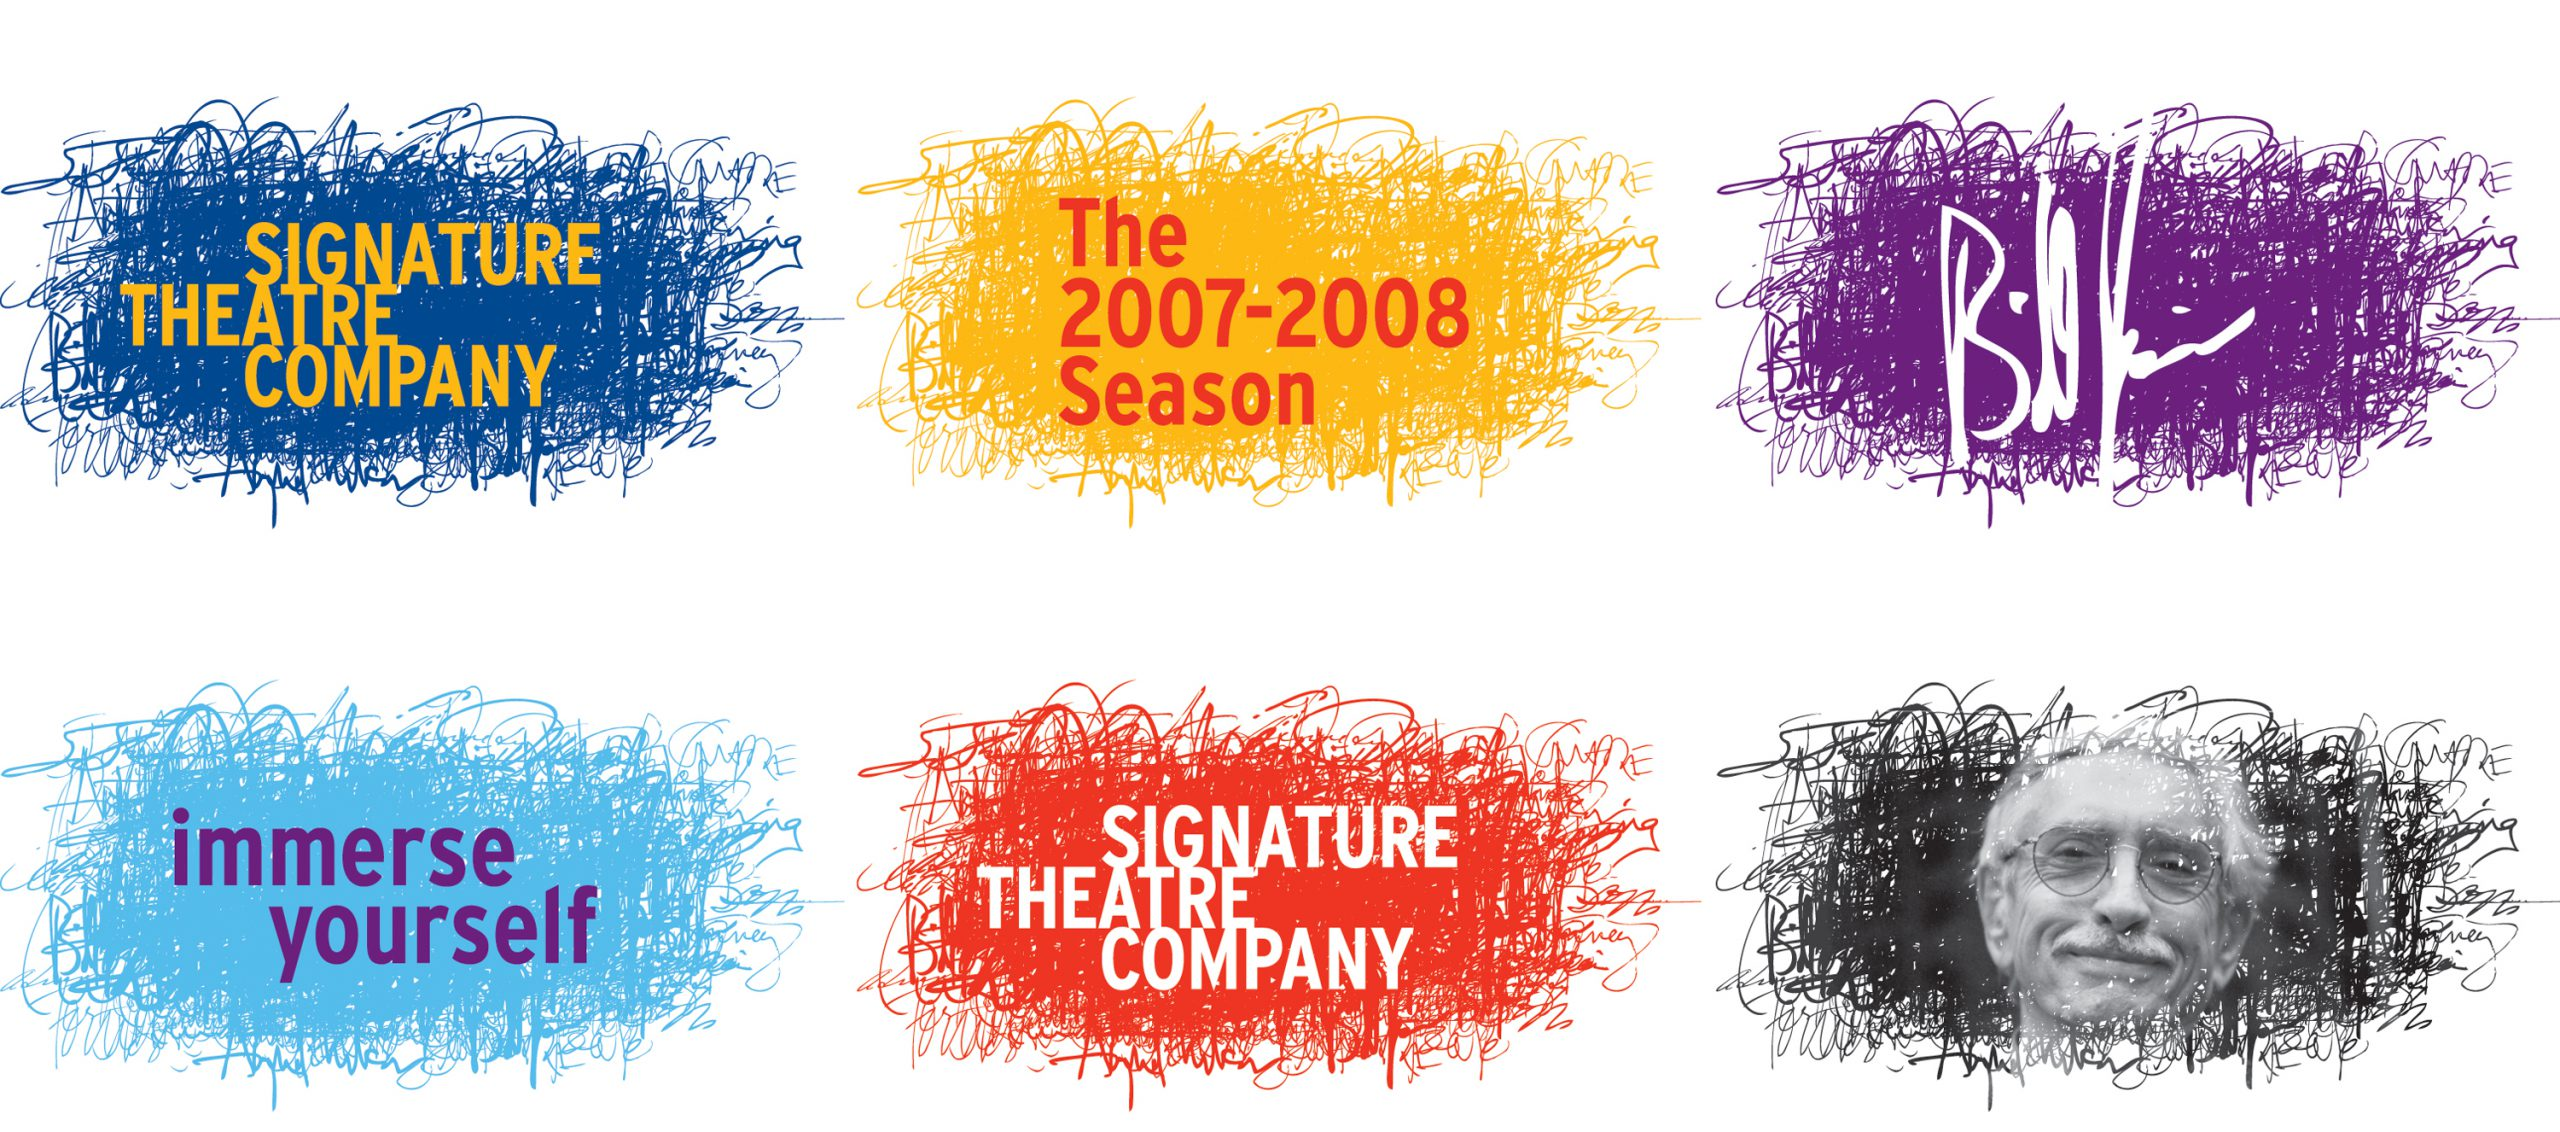 Project image 1 for Branding and Collateral Materials, Signature Theatre Company